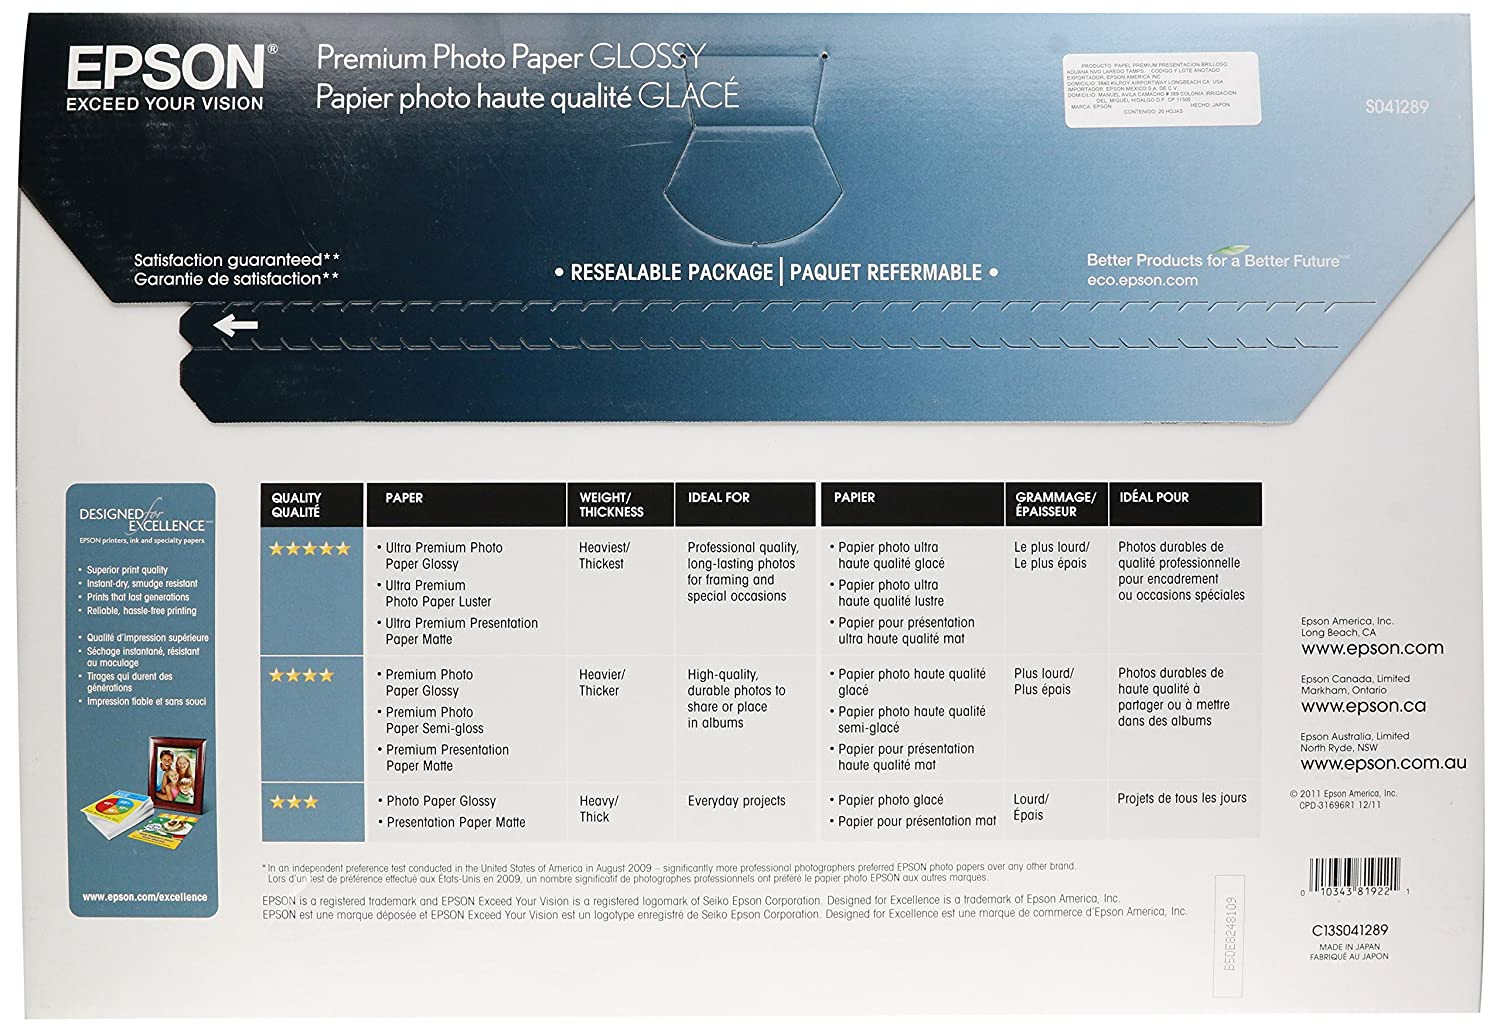 Epson Premium Photo Paper GLOSSY (8 5x11 Inches, 50 Sheets) (S041667)